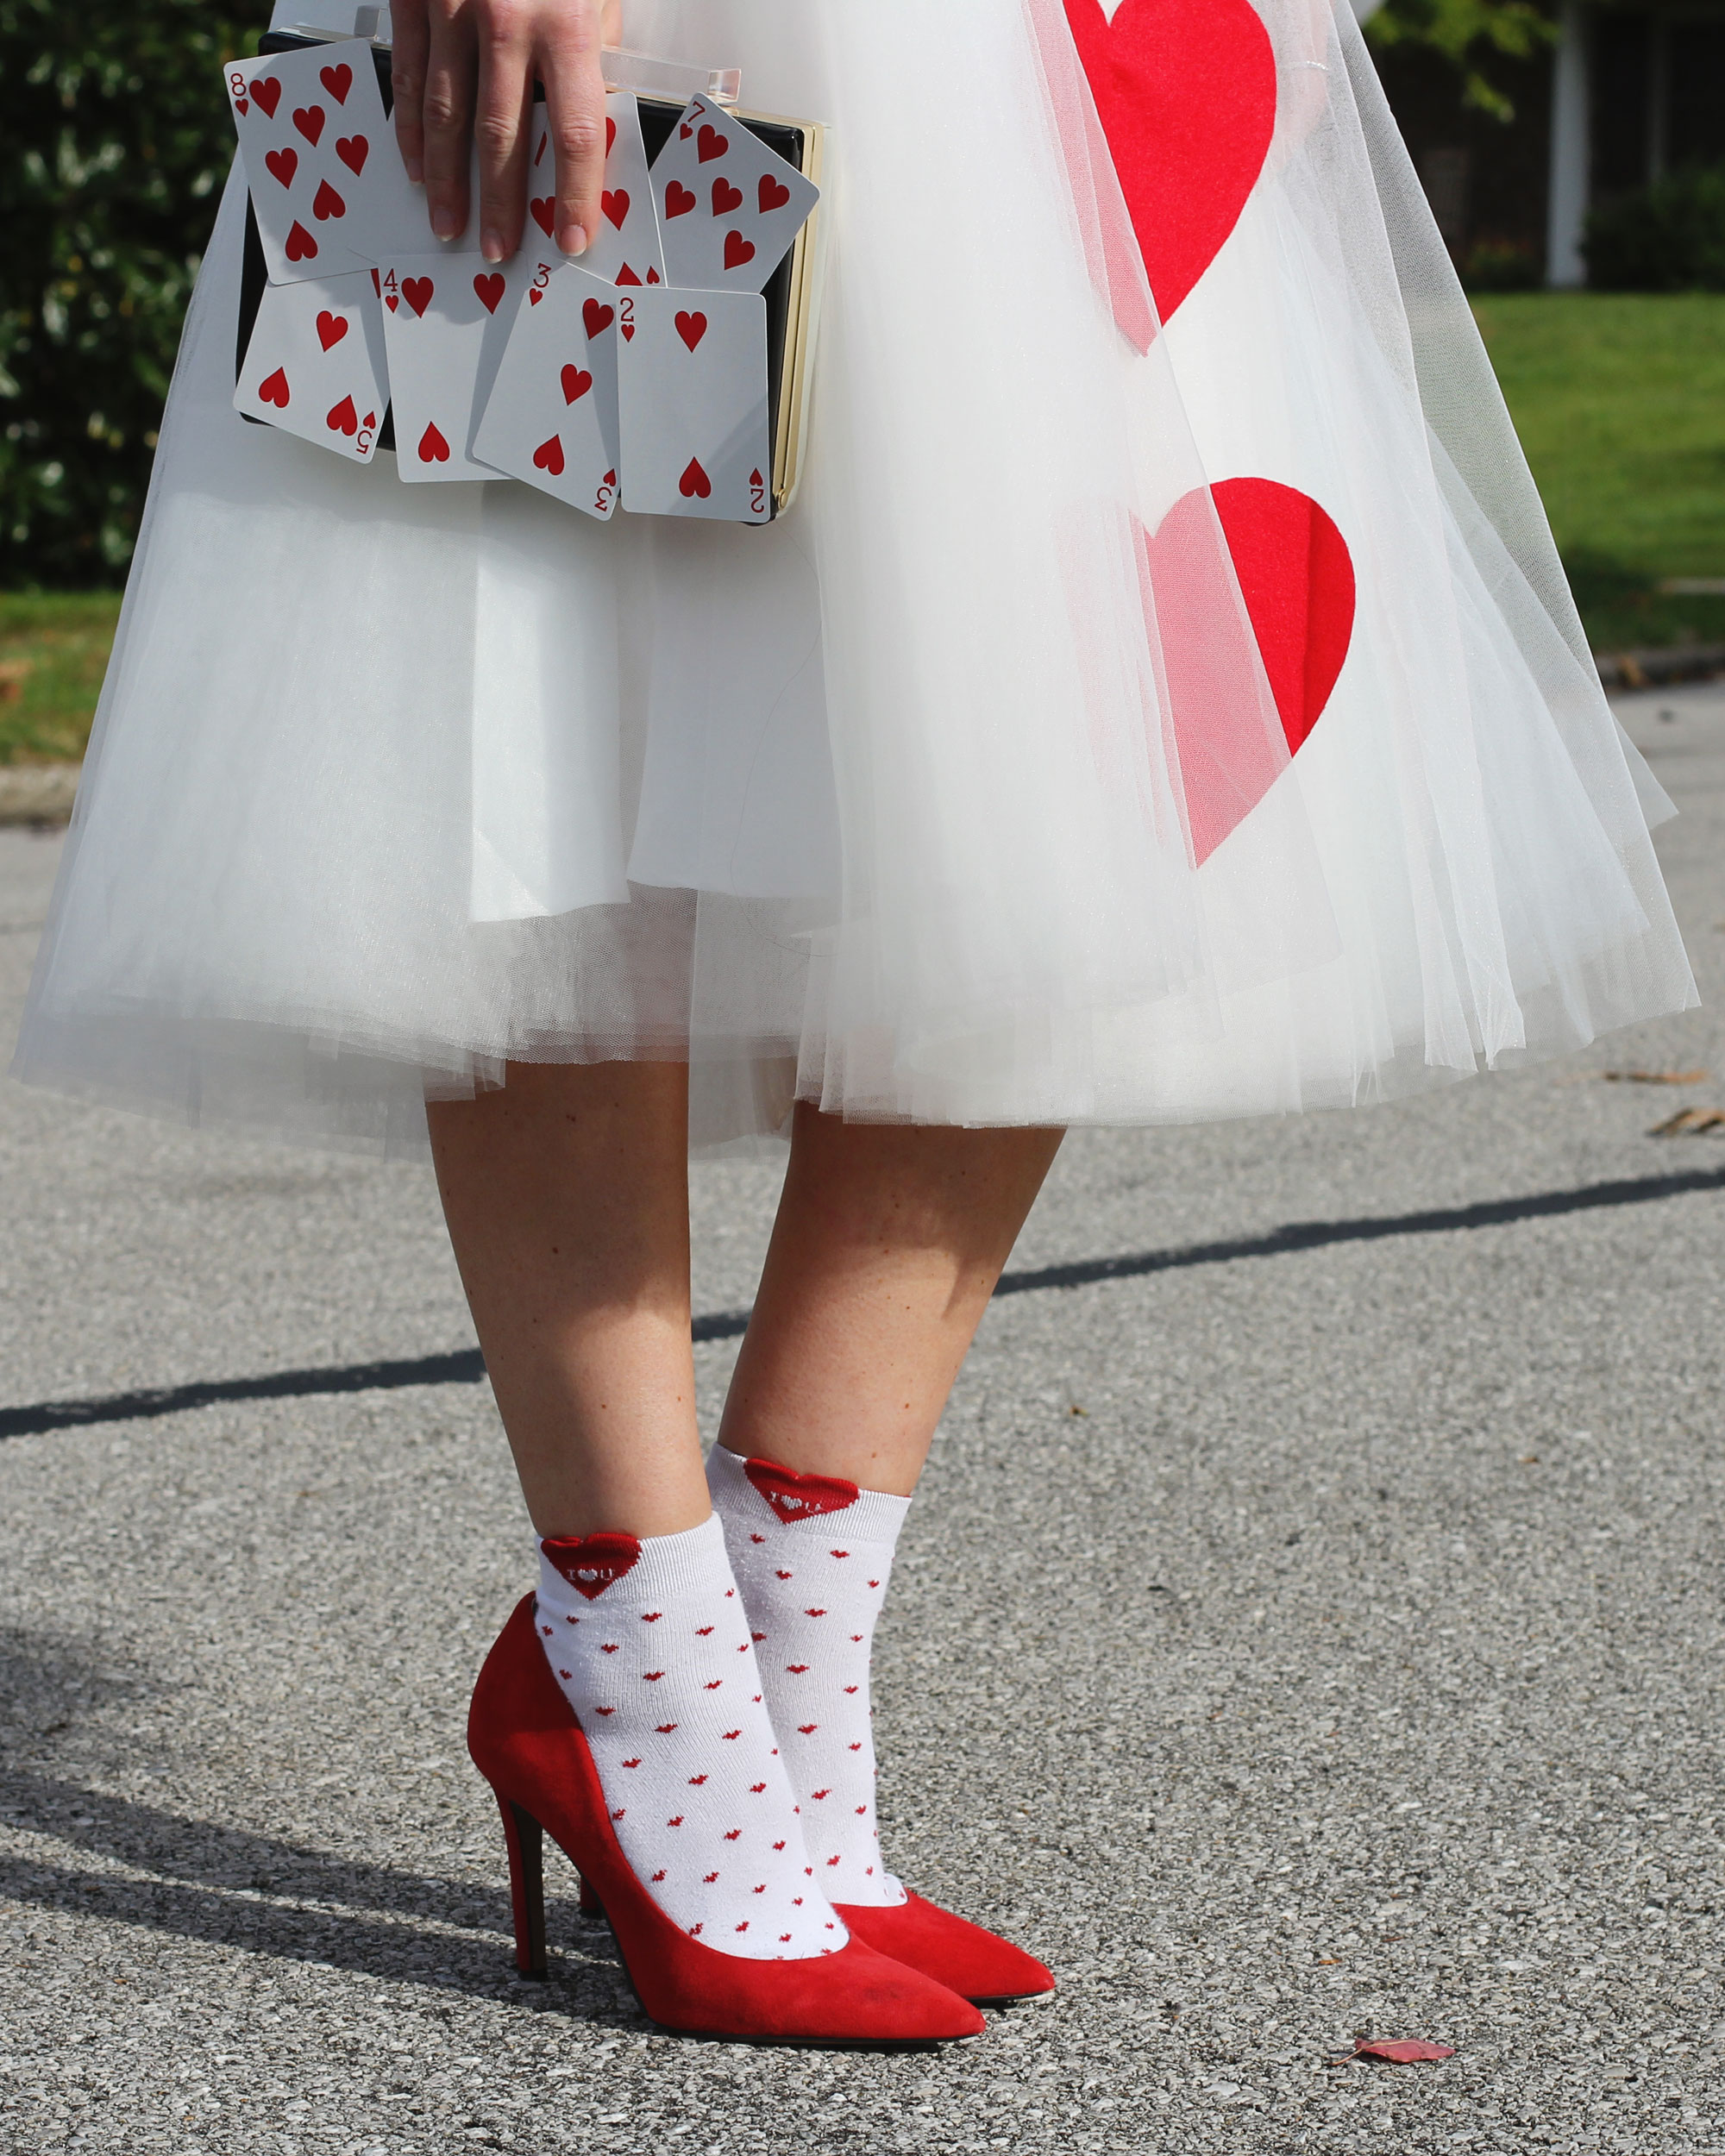 Queen of Hearts Costume, LC Lauren Conrad for Kohls Fringe Crop Top, Space 46 Tulle Skirt, Jessica Simpson Claudette Pumps, Socks with Pumps, DIY Halloween Costume, Cheap & Easy Halloween Costume